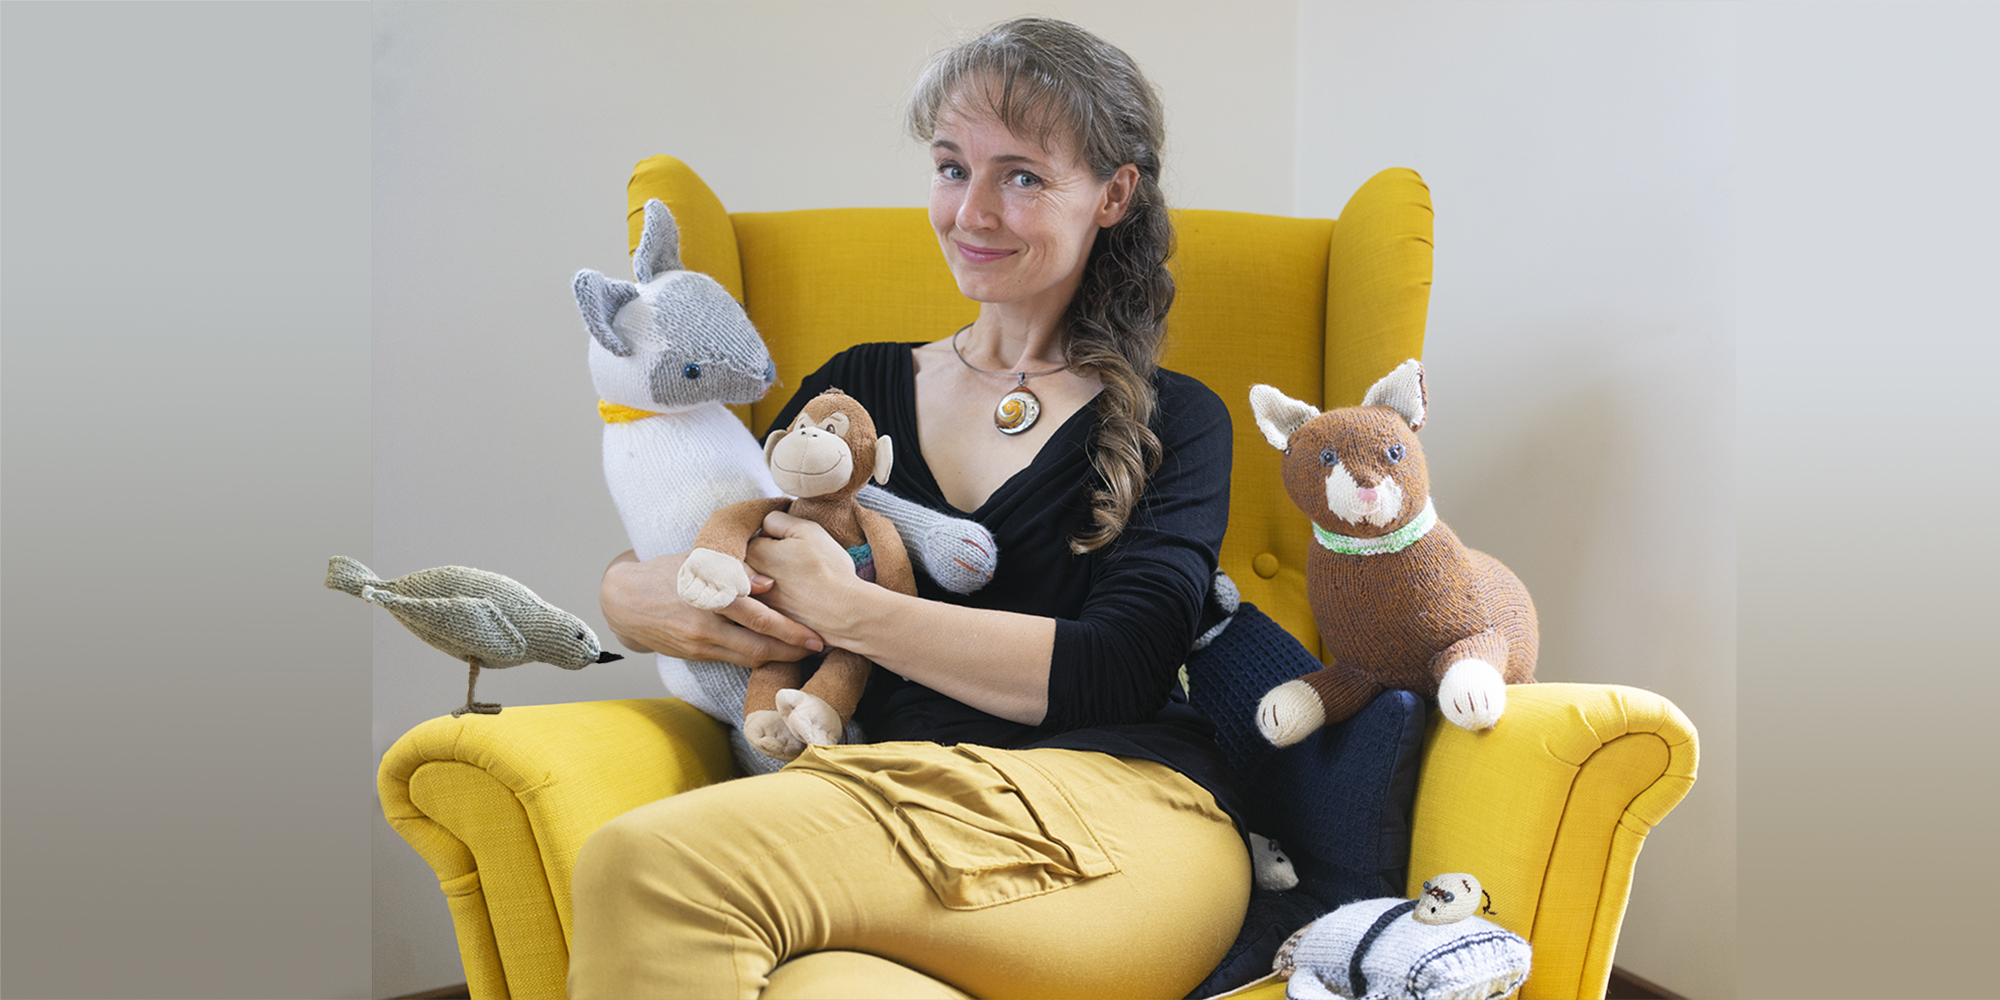 Author and illustrator Tina Wilson sitting with her characters from Monkey's Great Adventures